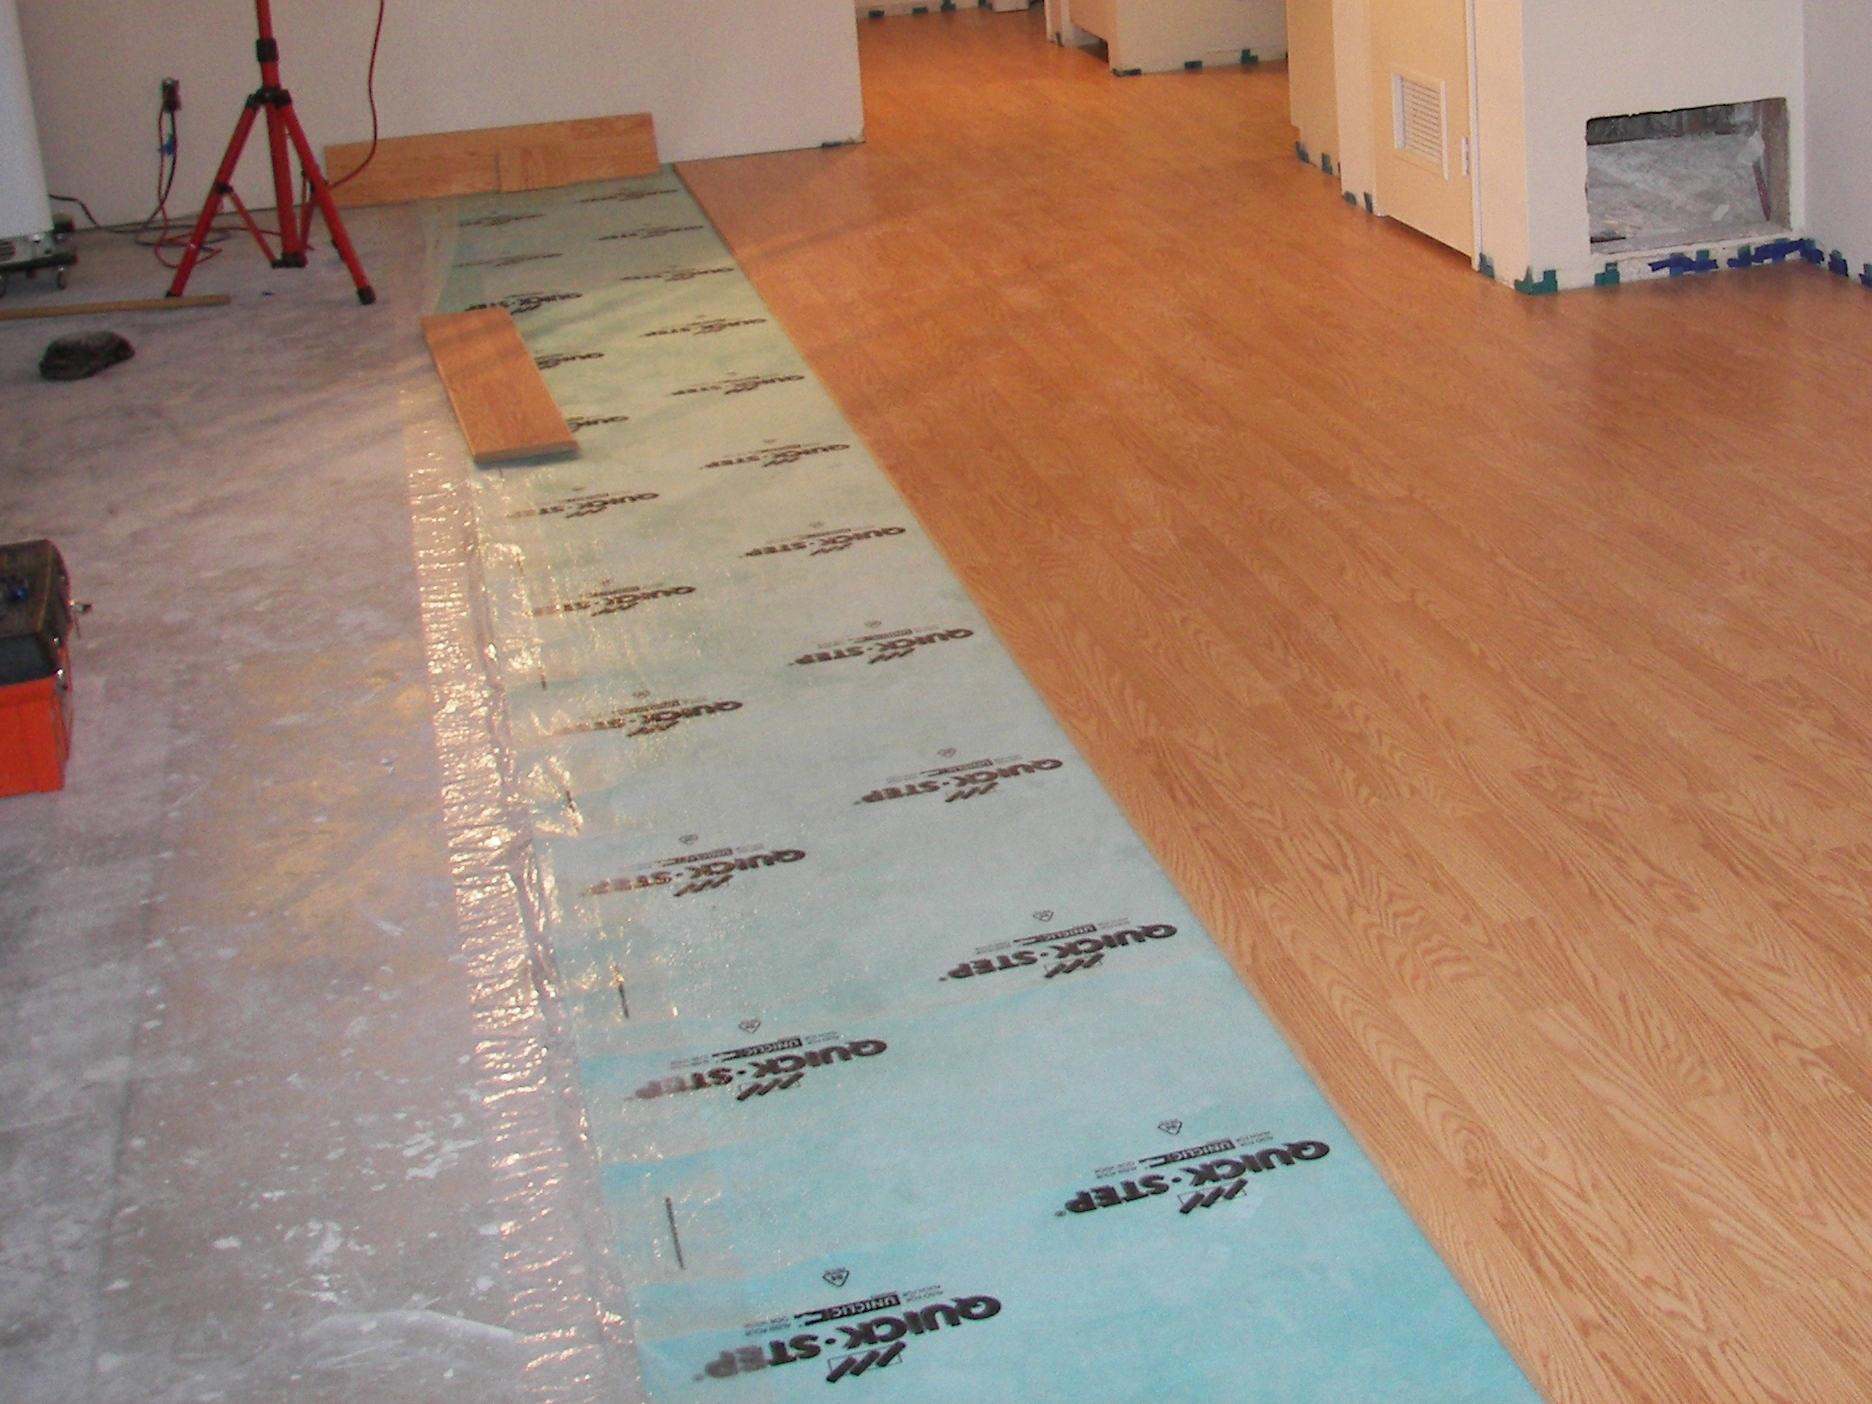 Basement Floor Subfloor Basement Floor Subfloor best subfloor for basement ideas new basement ideas 1872 X 1404